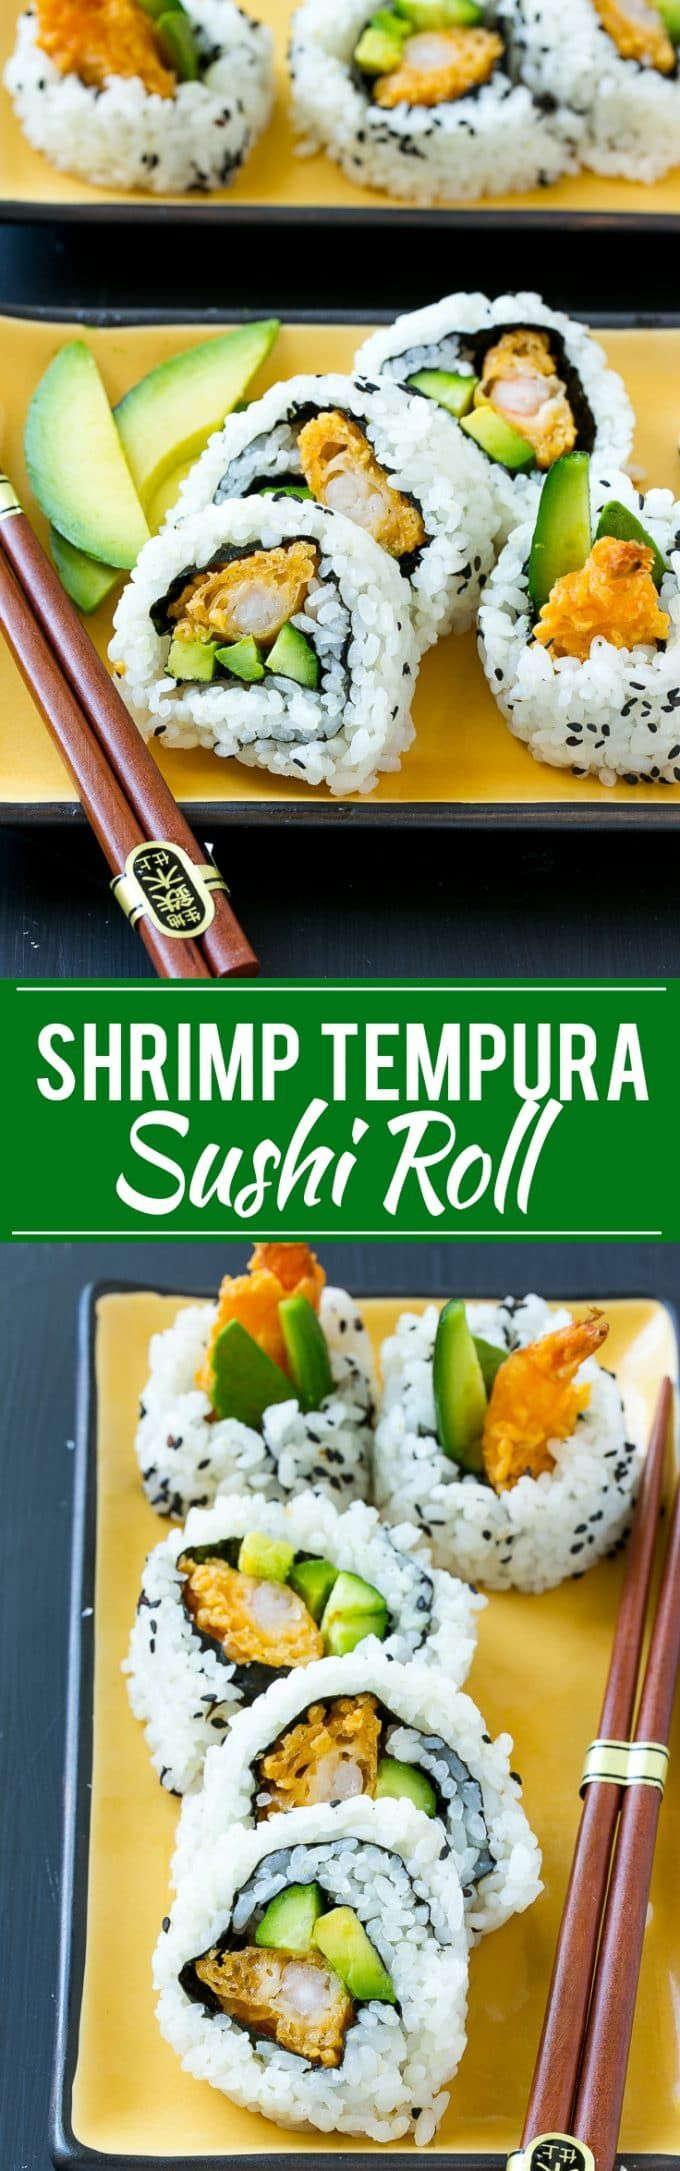 Shrimp Tempura Roll Recipe | Homemade Sushi Recipe | Easy Sushi | Shrimp Tempura | Shrimp Sushi